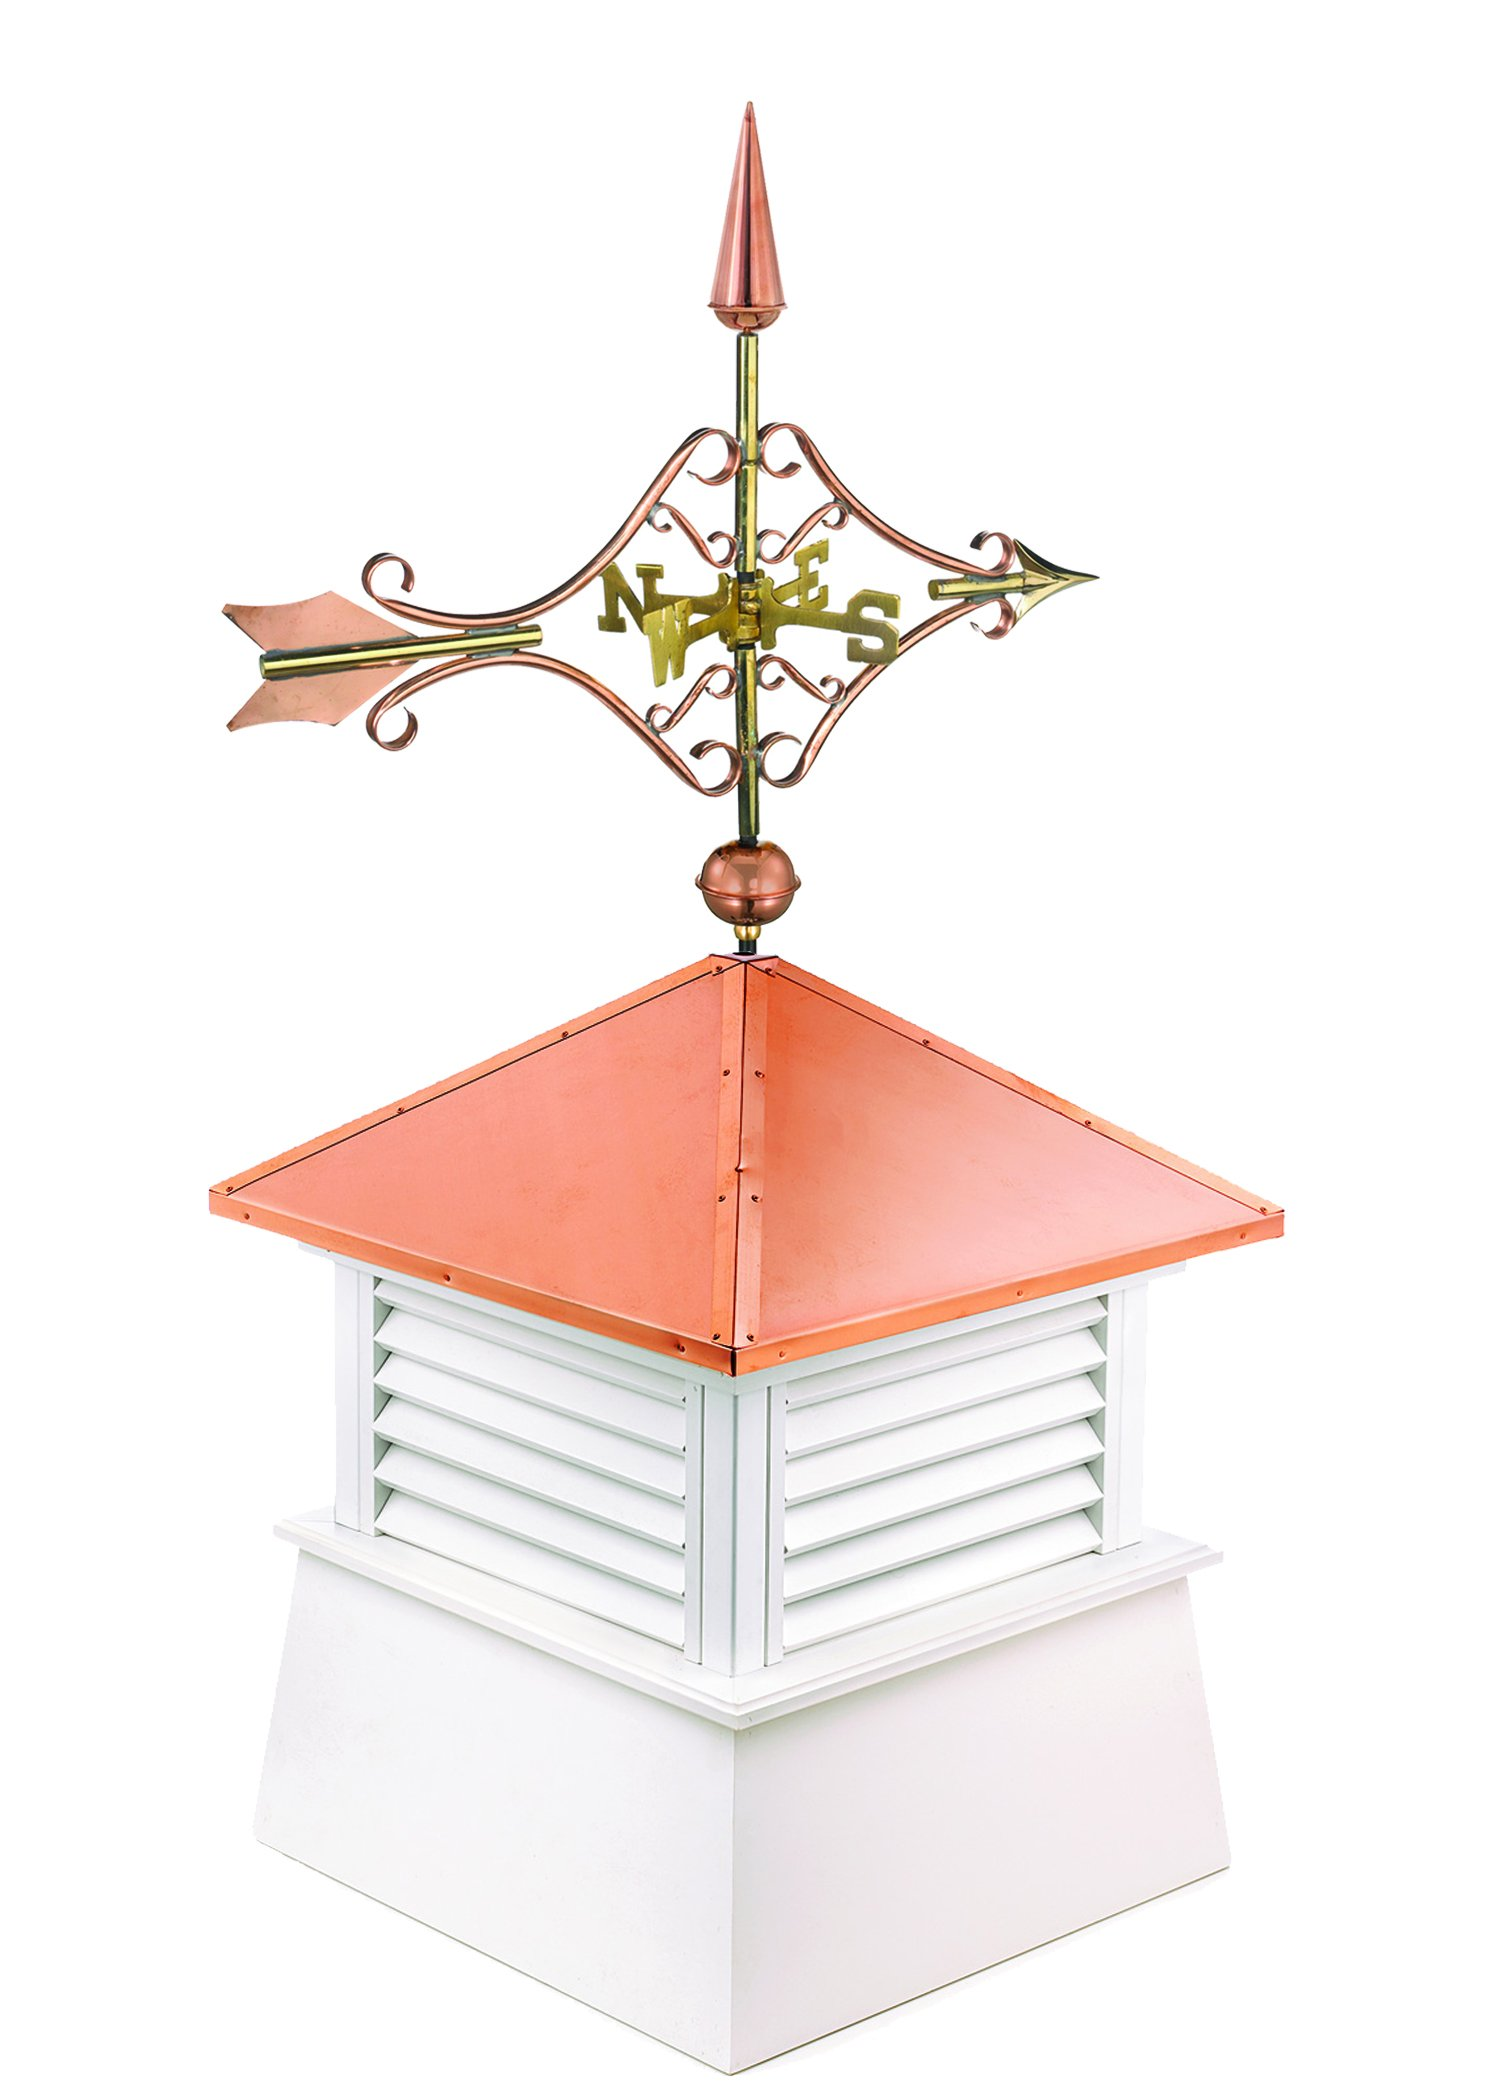 "Manchester Vinyl Cupola with Victorian Arrow Weathervane, Perfect Size for a Small Shed, 18"" square x 44"" high, Pure Copper Roof by Good Directions"